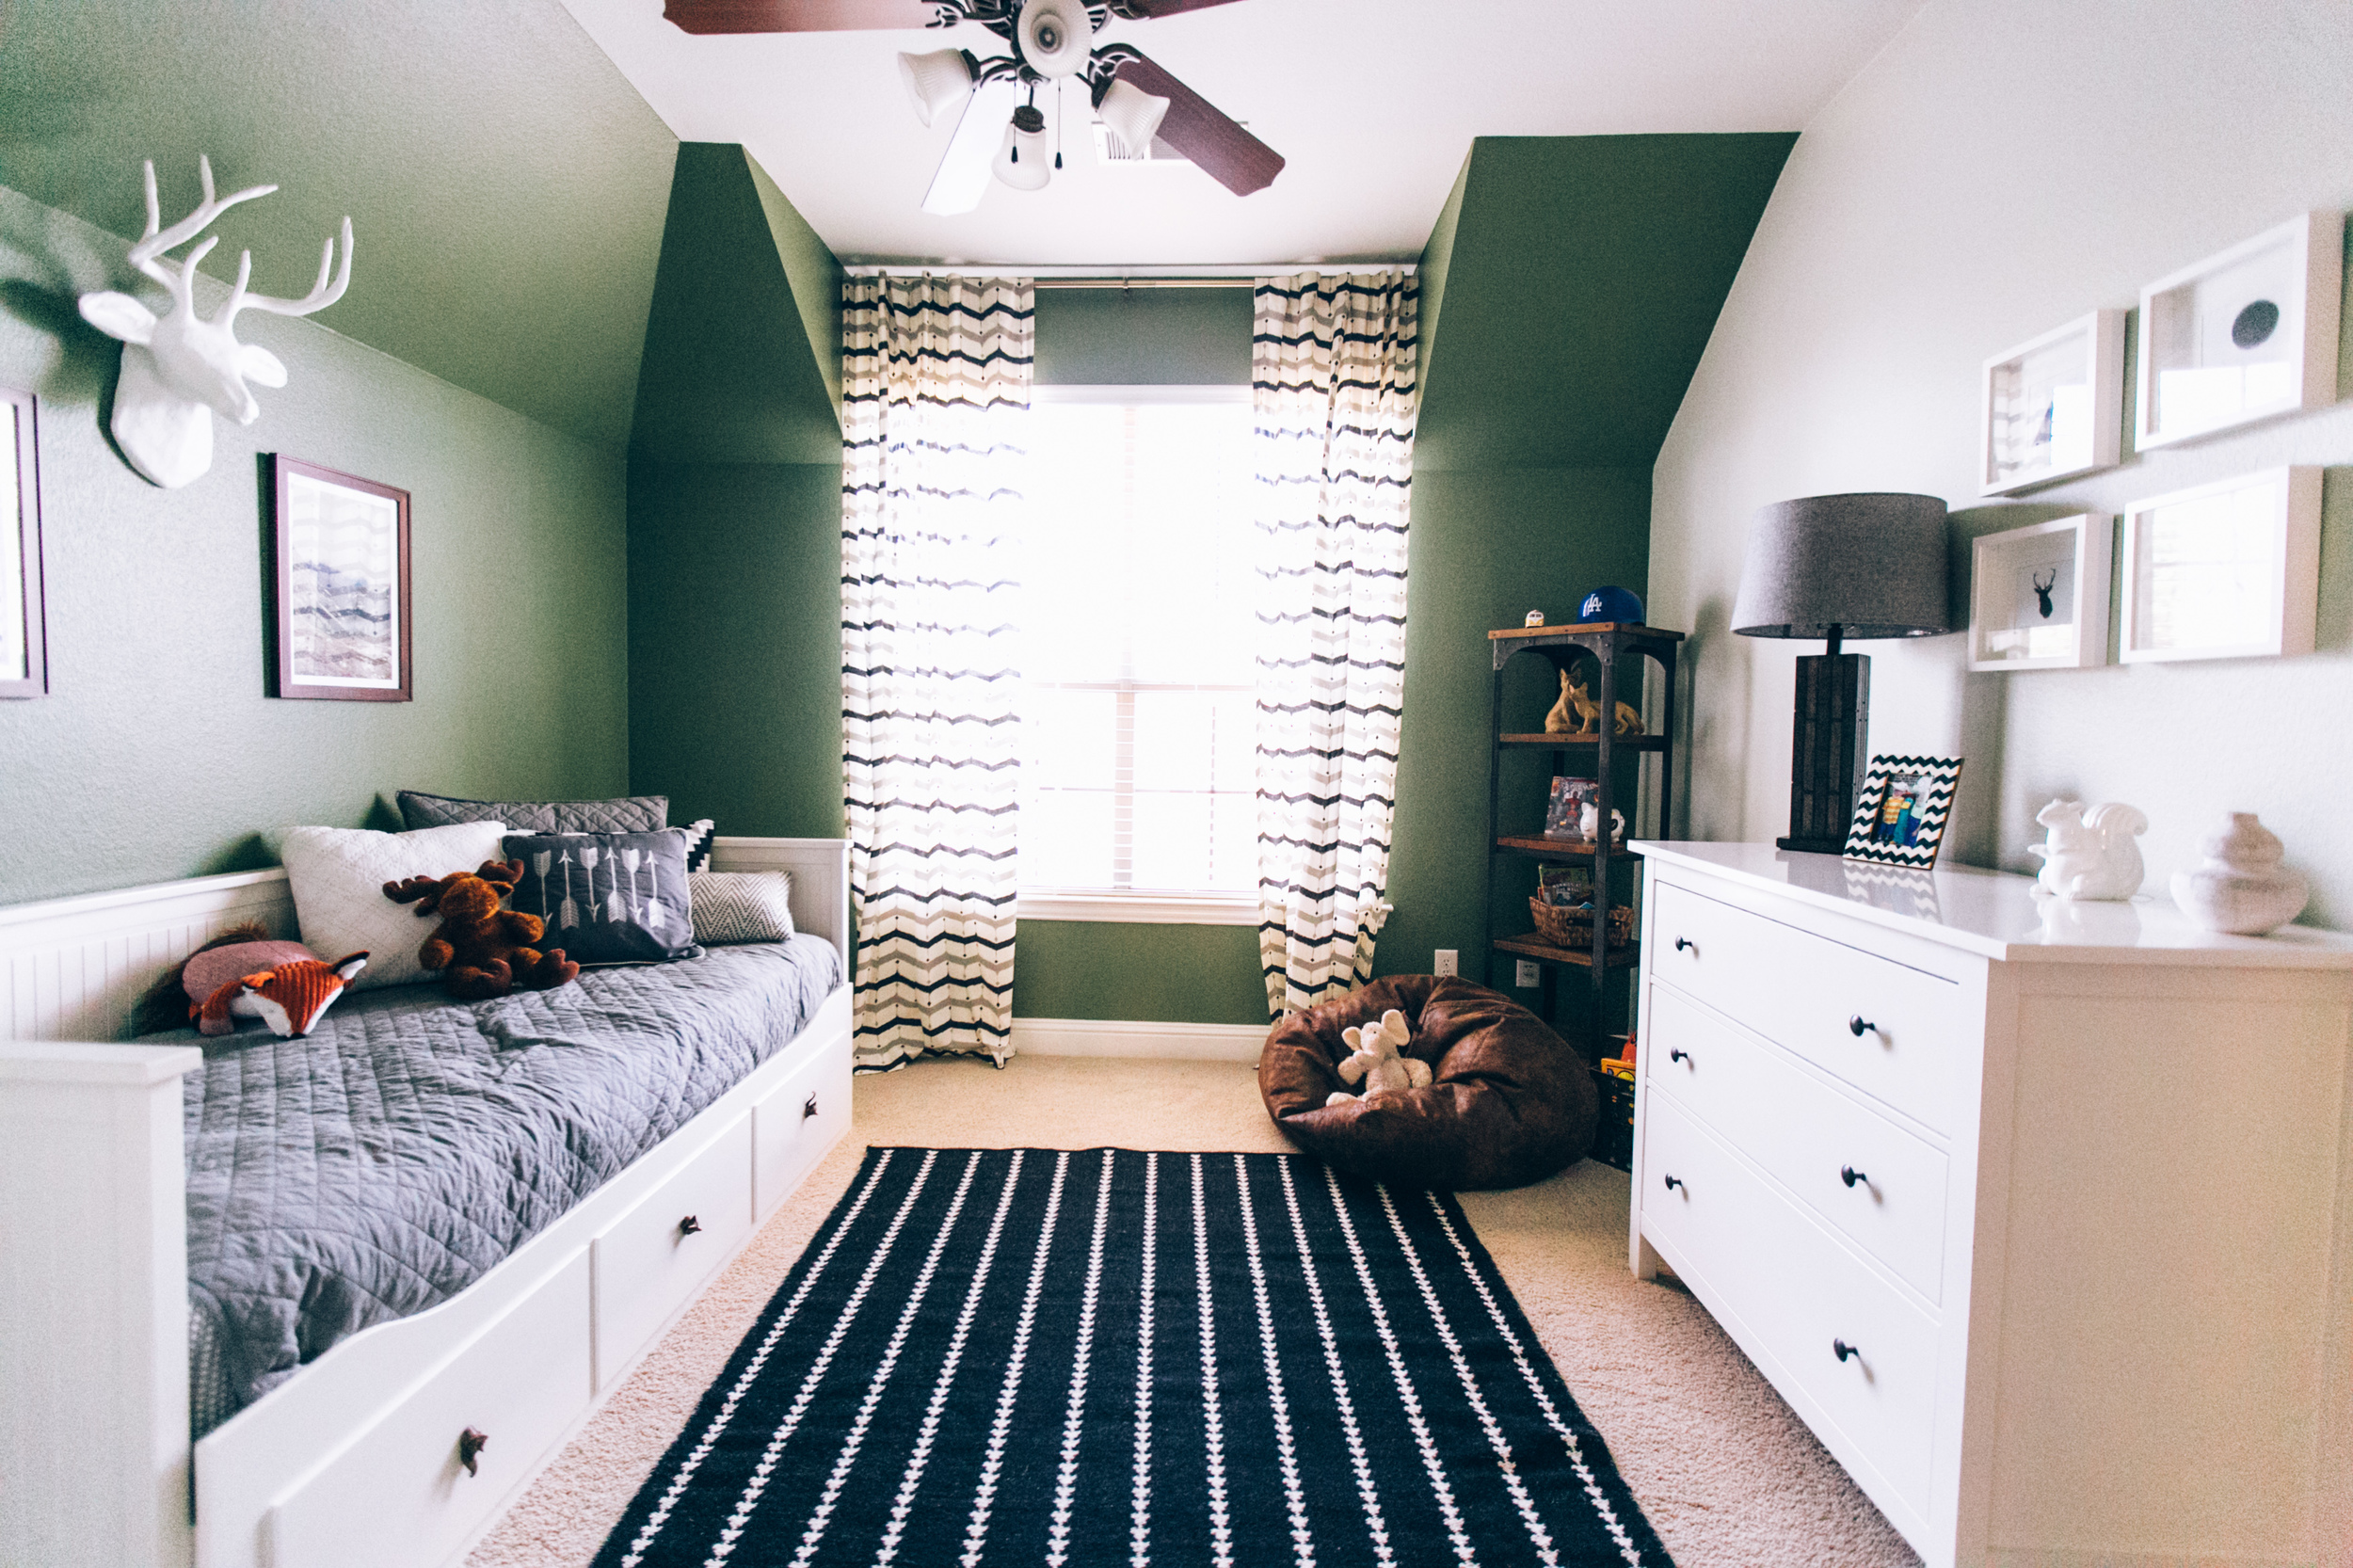 Interior-design-kids-room-Keller-Texas-186.jpg